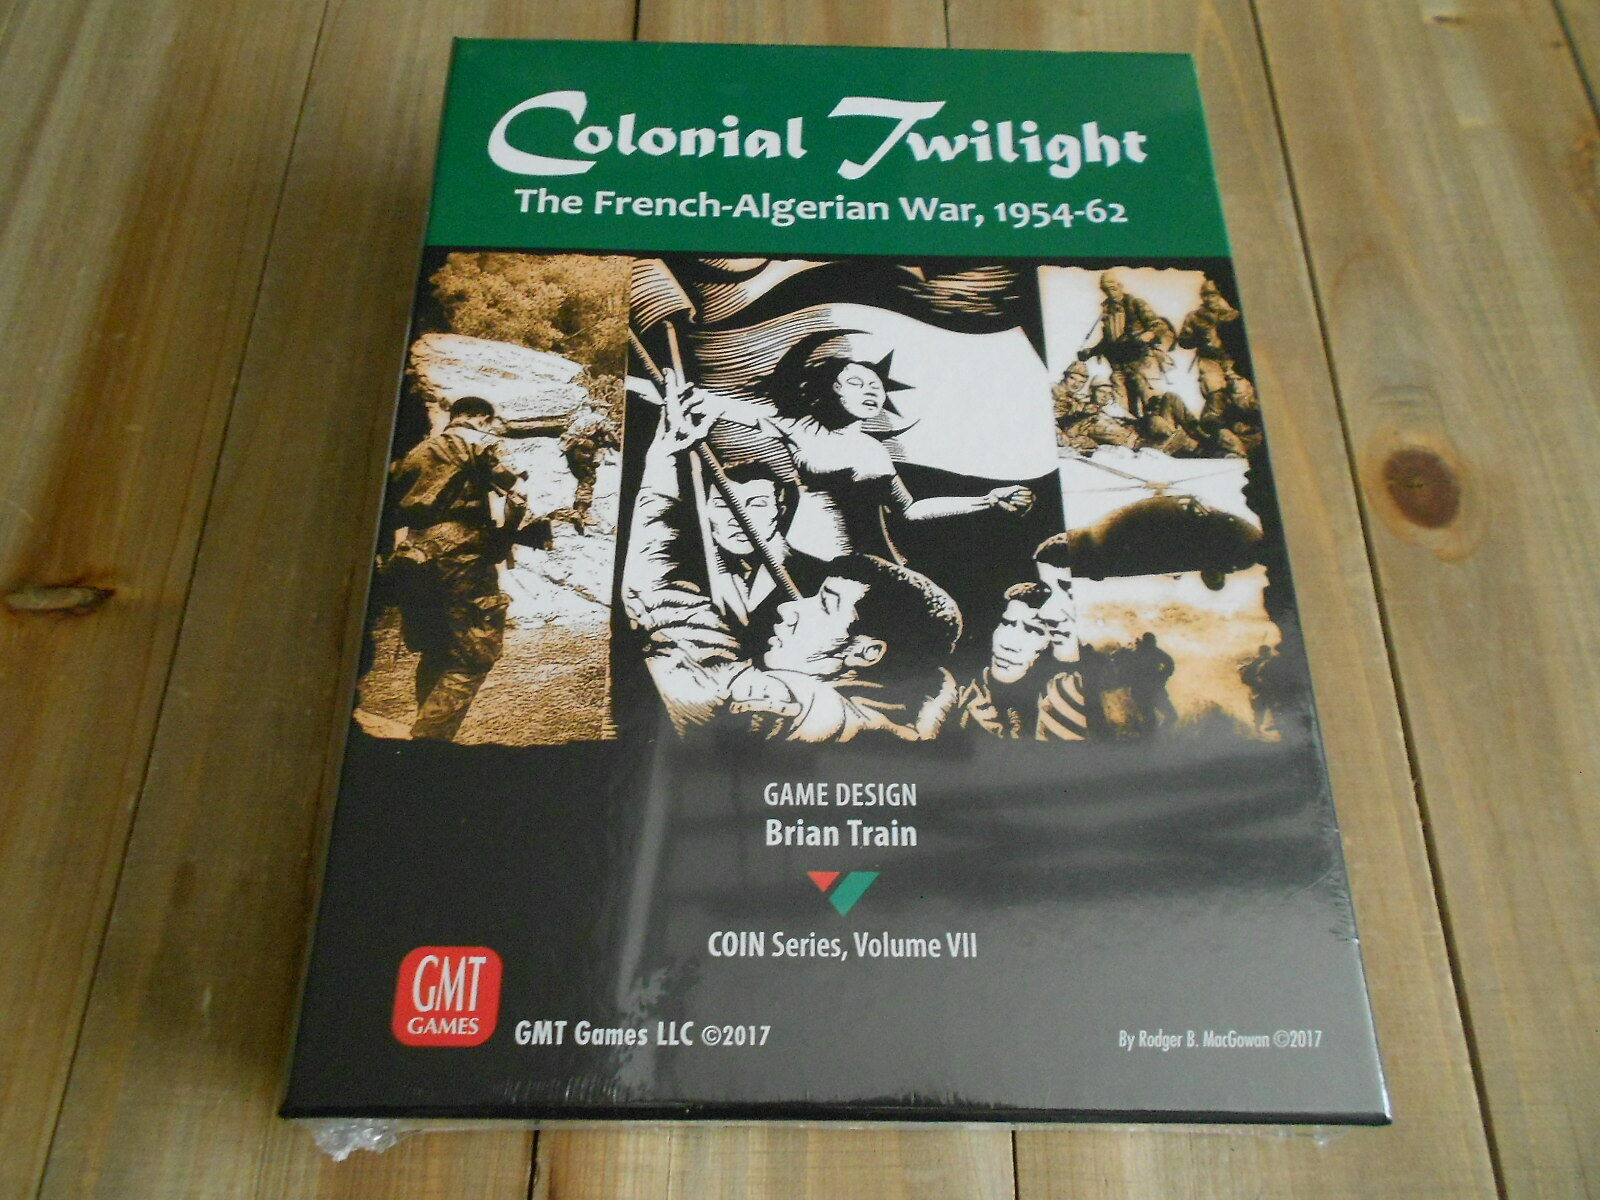 Juego wargame - Colonial Twilight  the French-Algerian War 1954-1962 - GMT Games